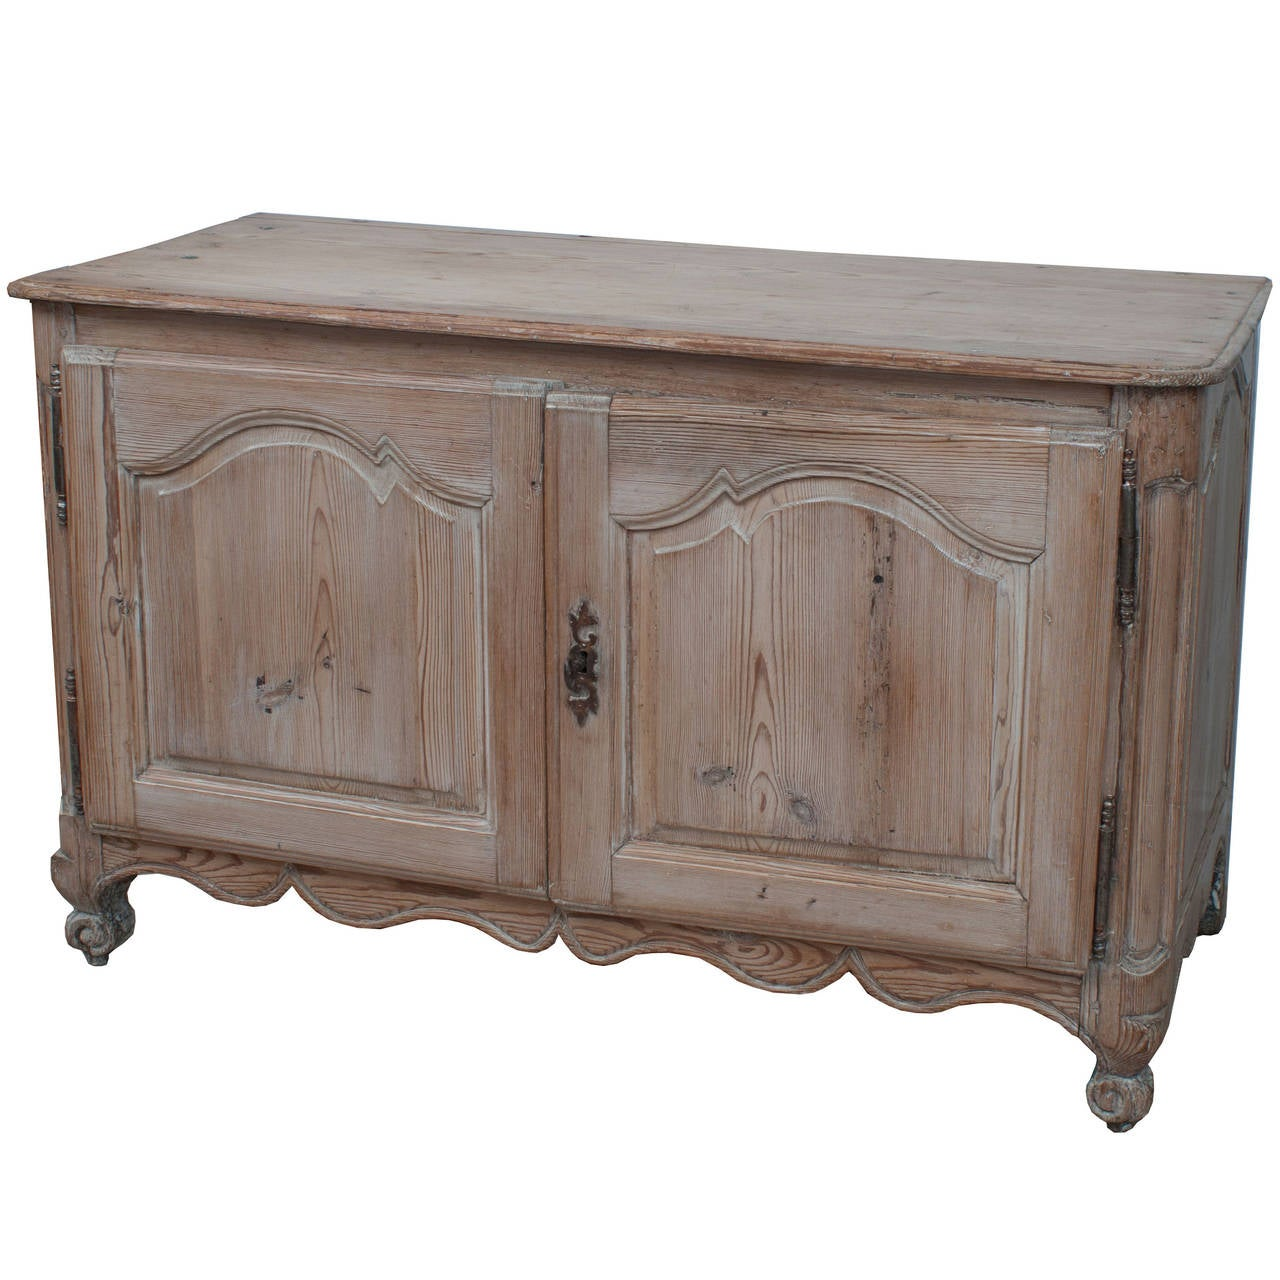 small louis xvi buffet or sideboard in natural pine for sale at 1stdibs. Black Bedroom Furniture Sets. Home Design Ideas